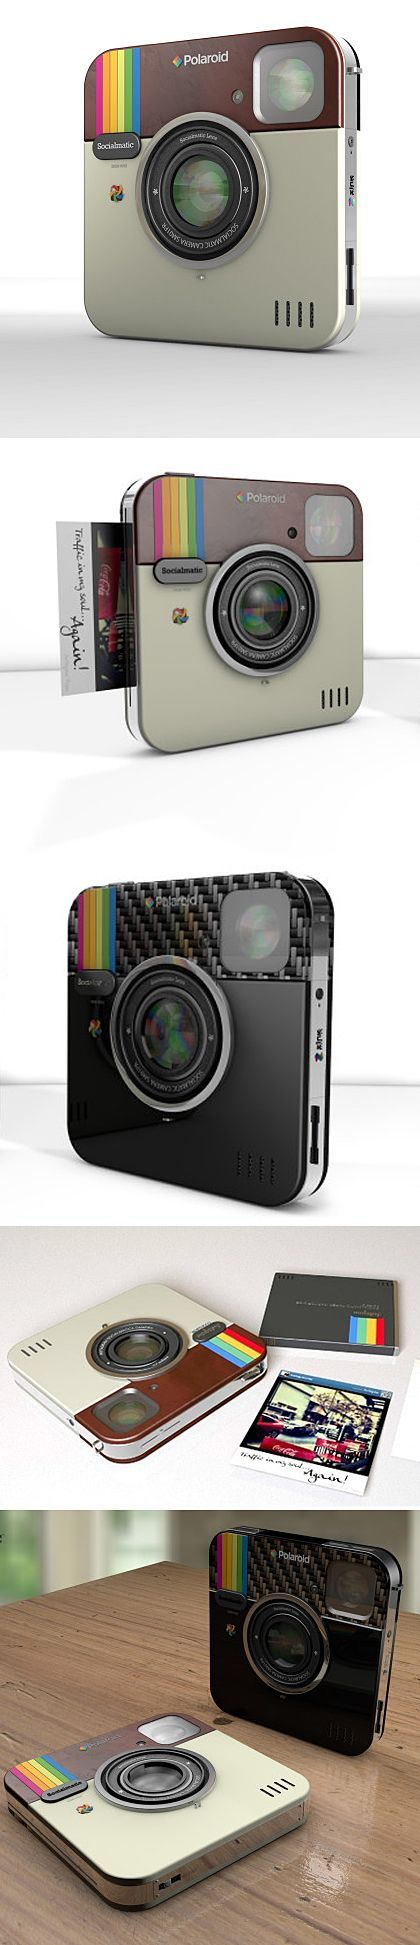 Cool Instagram-Inspired 2-in-1 Printer Camera